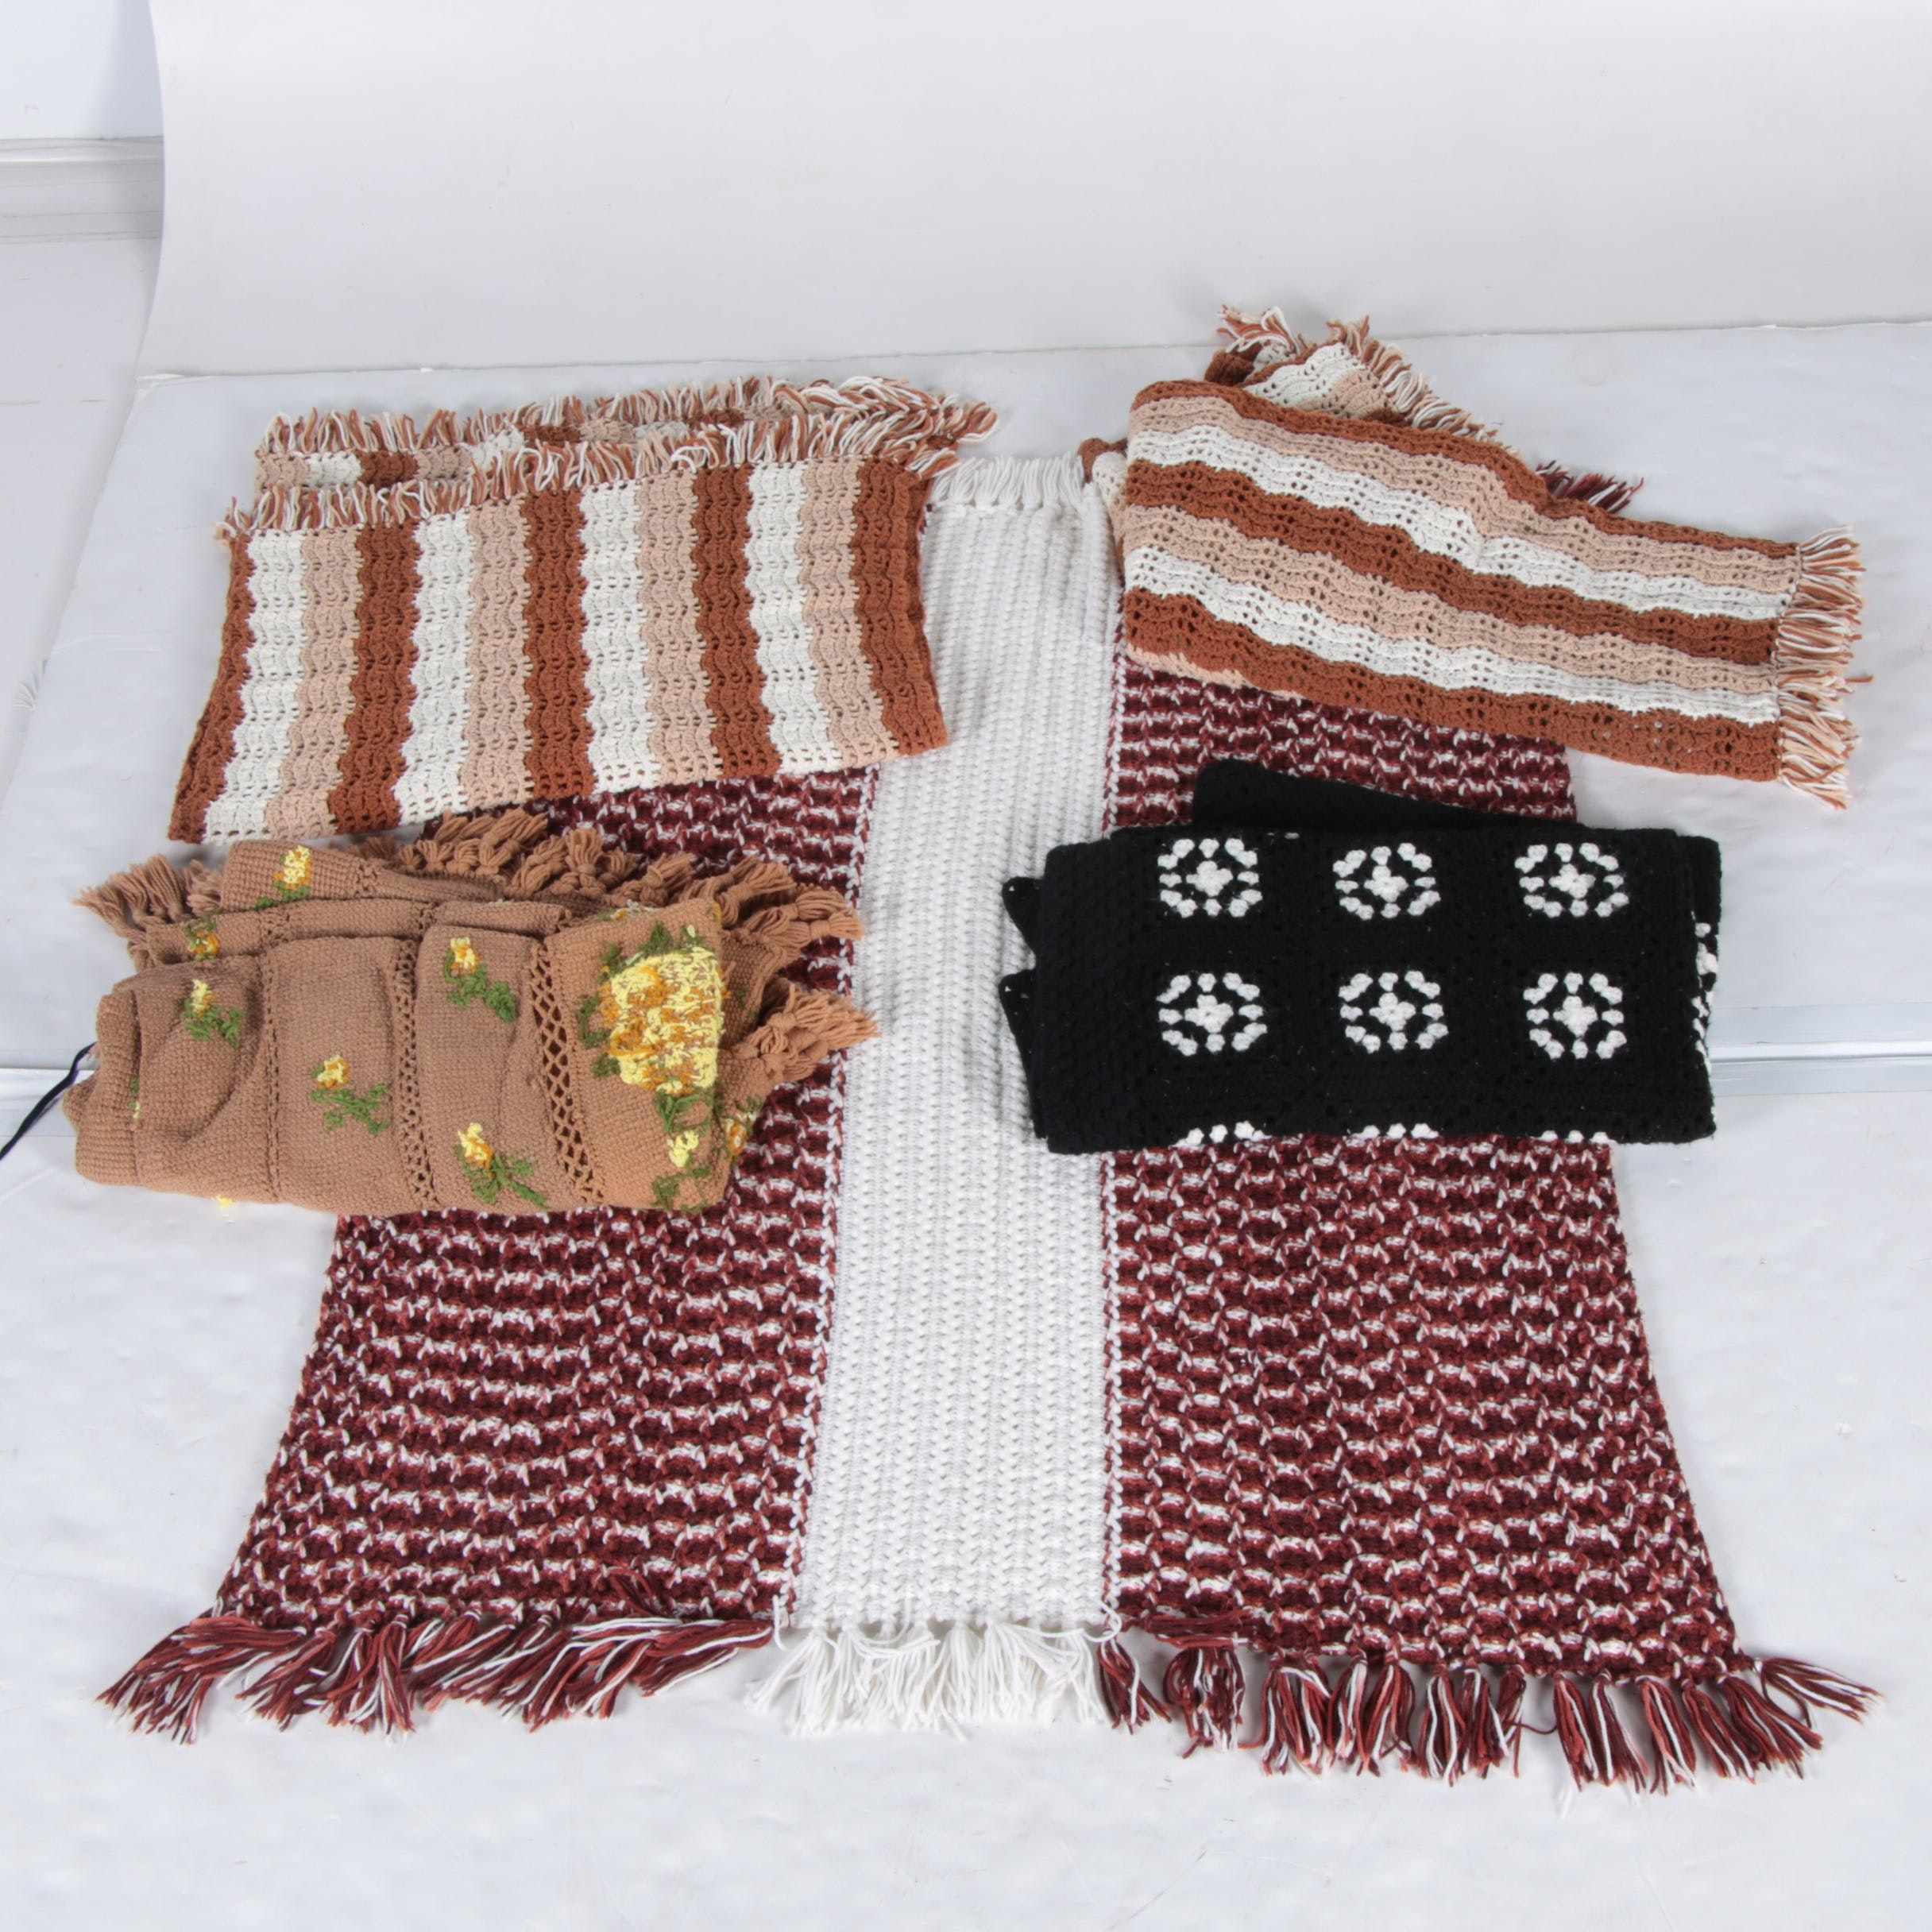 Five Hand Knitted Blankets